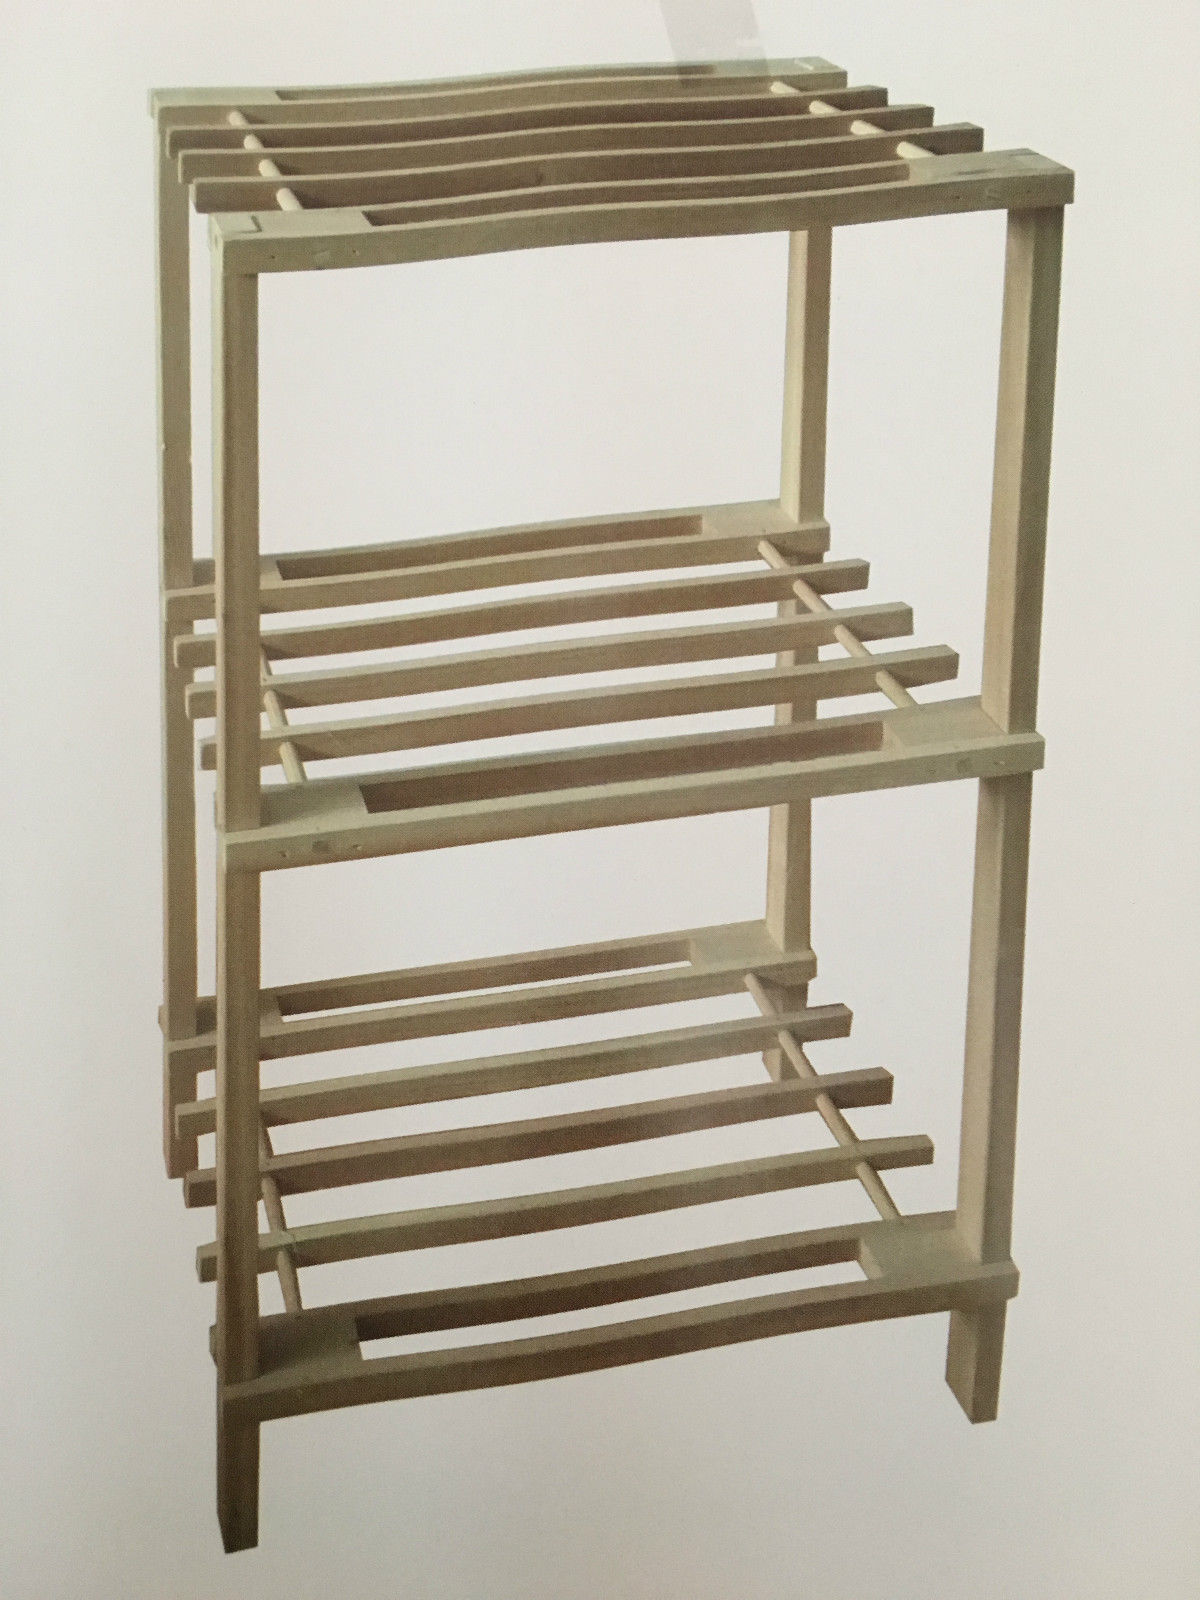 TIMBER SHELF 40Tier Storage Wooden Display Stand Wood Indoor Home Mesmerizing Soap Display Stands